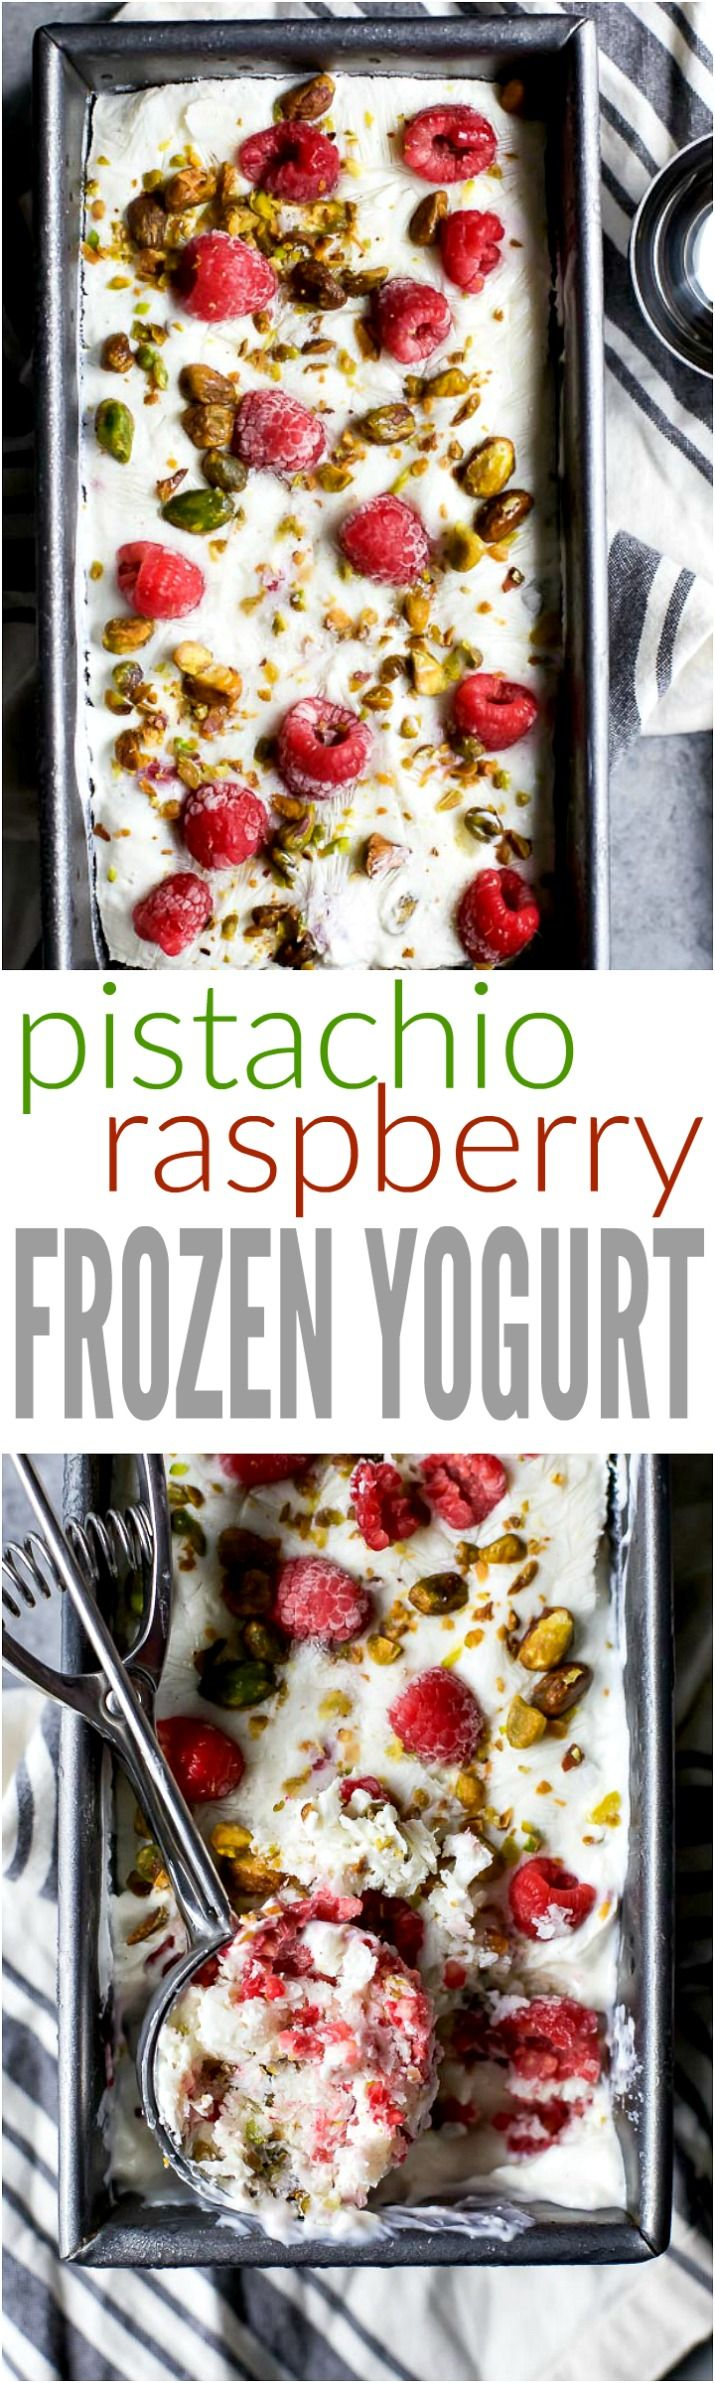 Healthy 5 Minute Pistachio Raspberry Frozen Yogurt - it's healthy, sweet, delicious, and so easy to make. The perfect way to satisfy that sweet tooth! | gluten free recipes